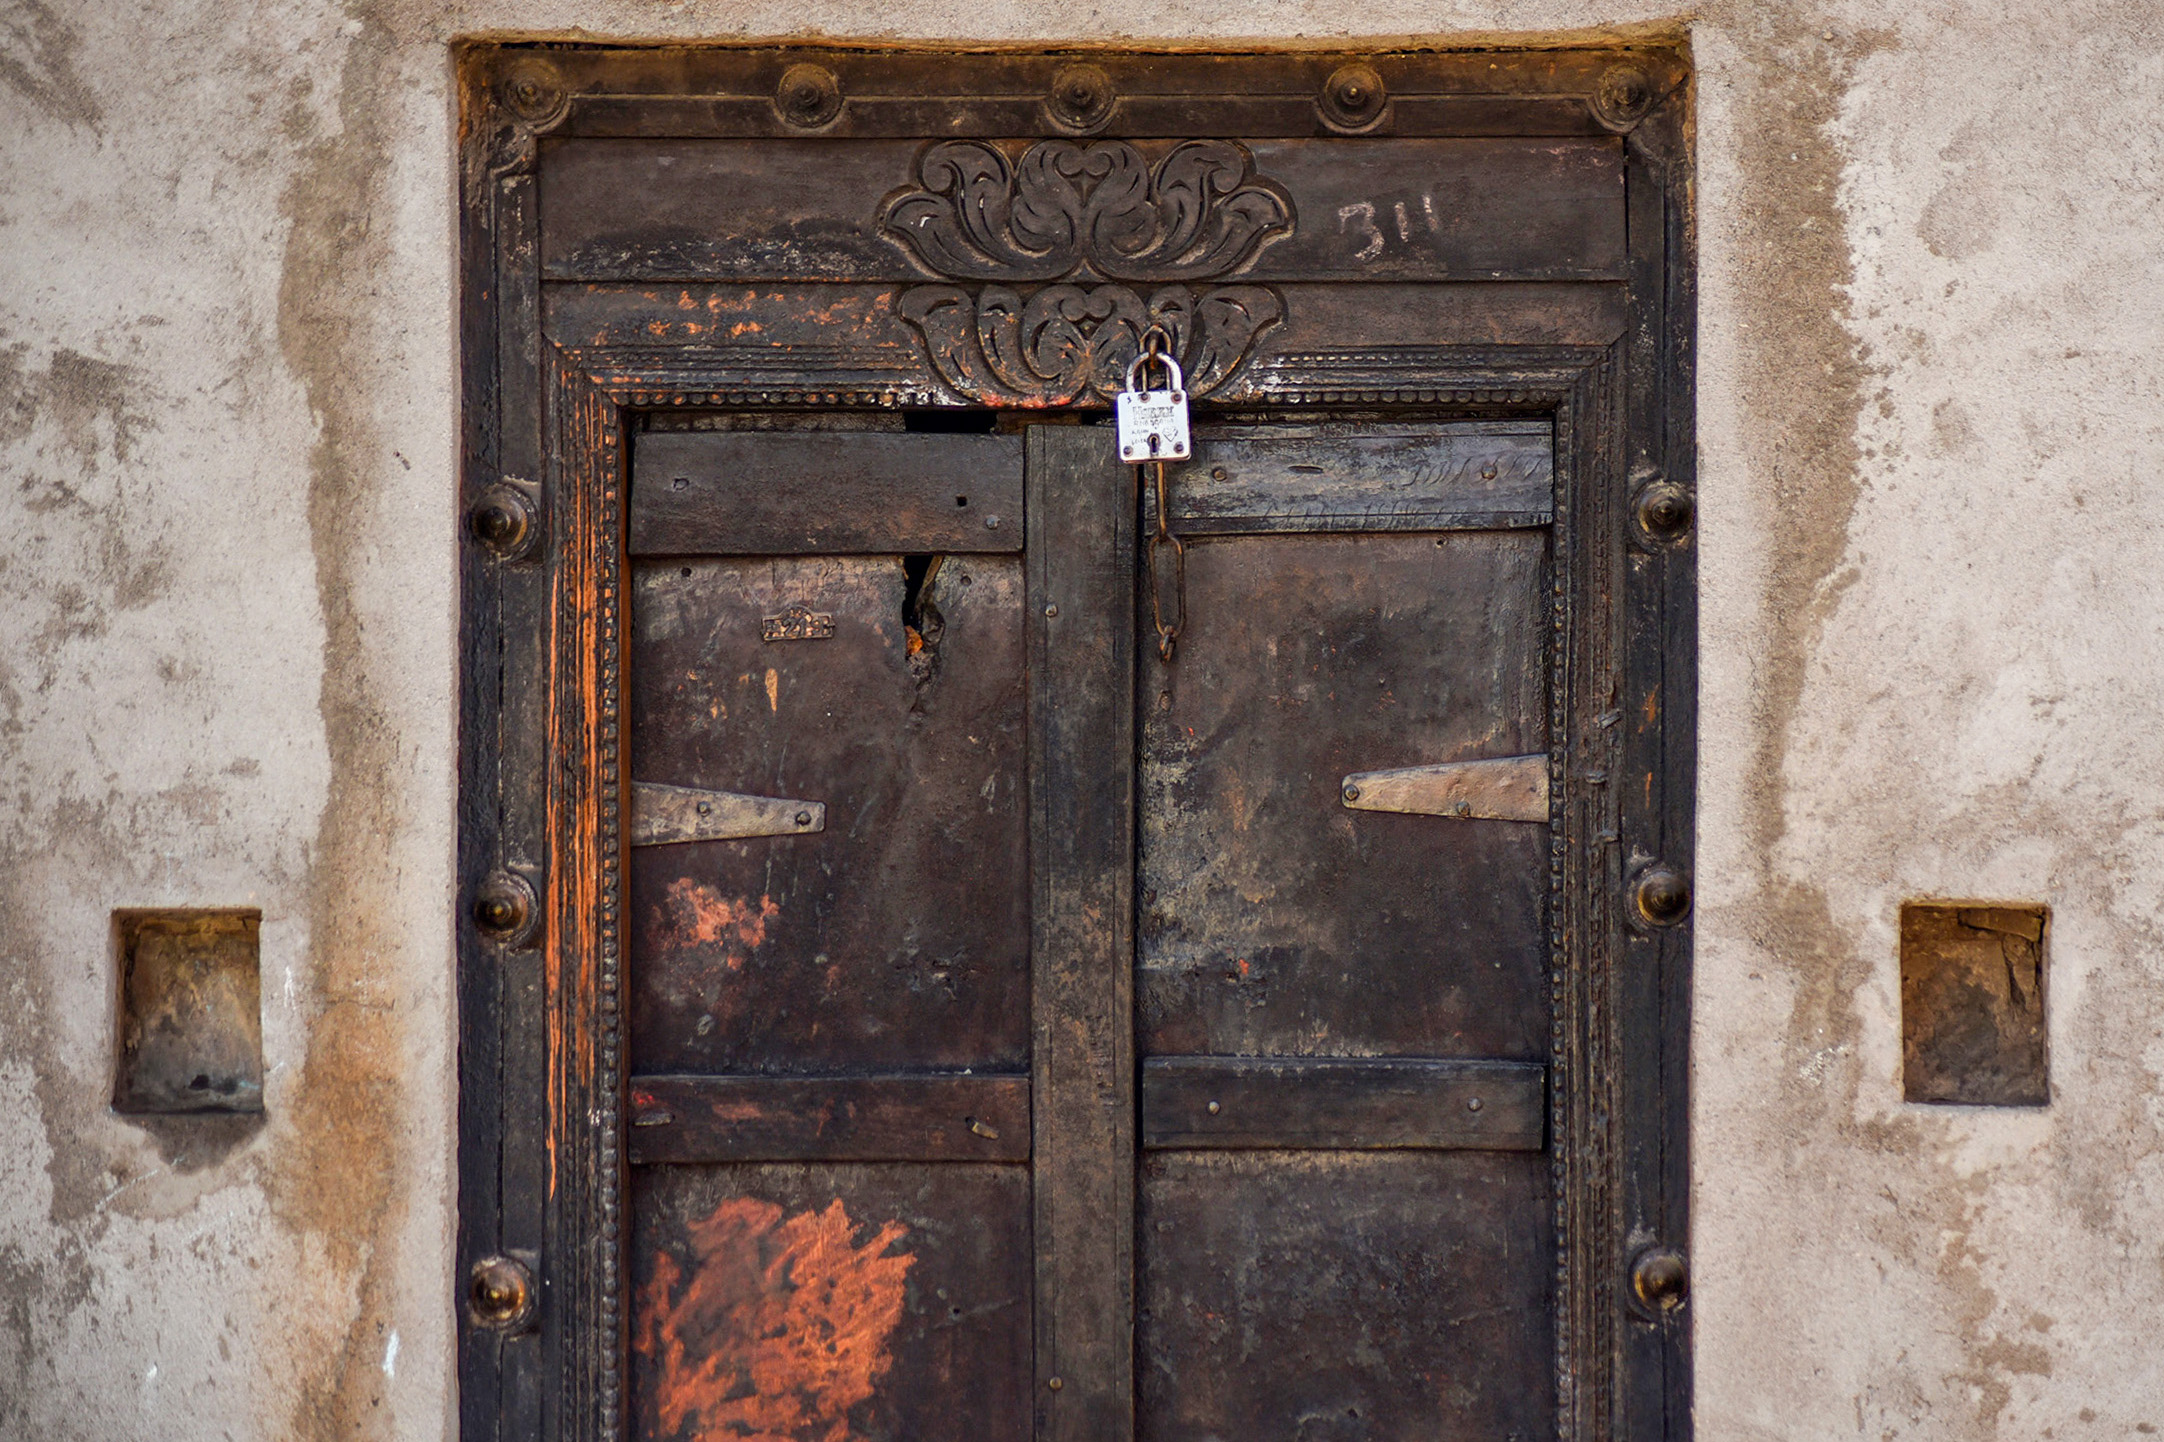 An old locked door.